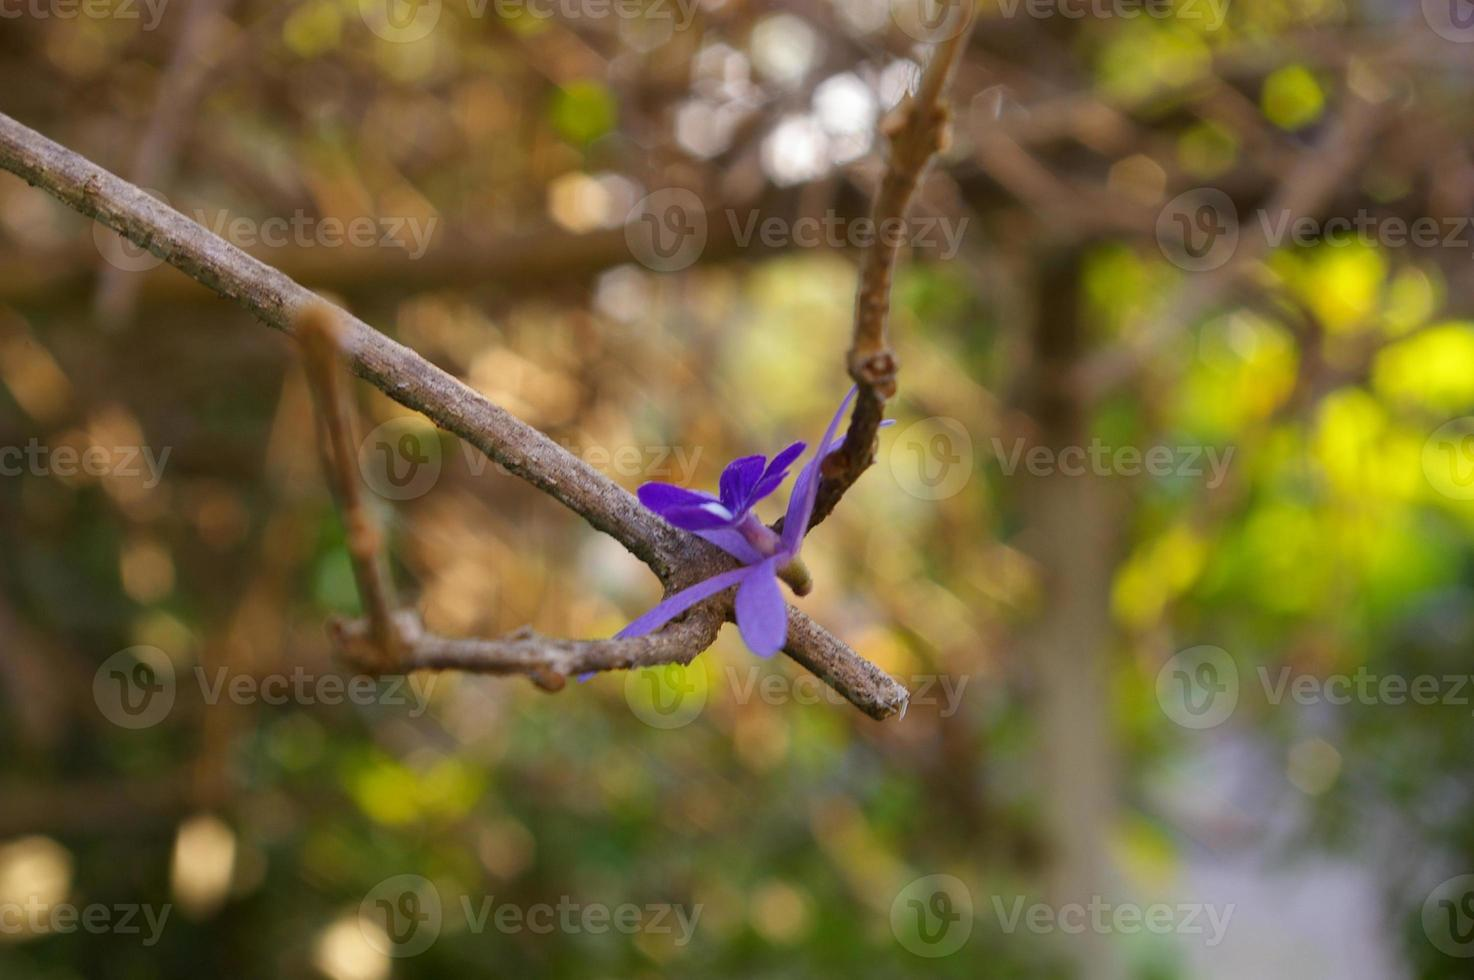 flower of Purple Wreath fell down and stayed on the branches photo